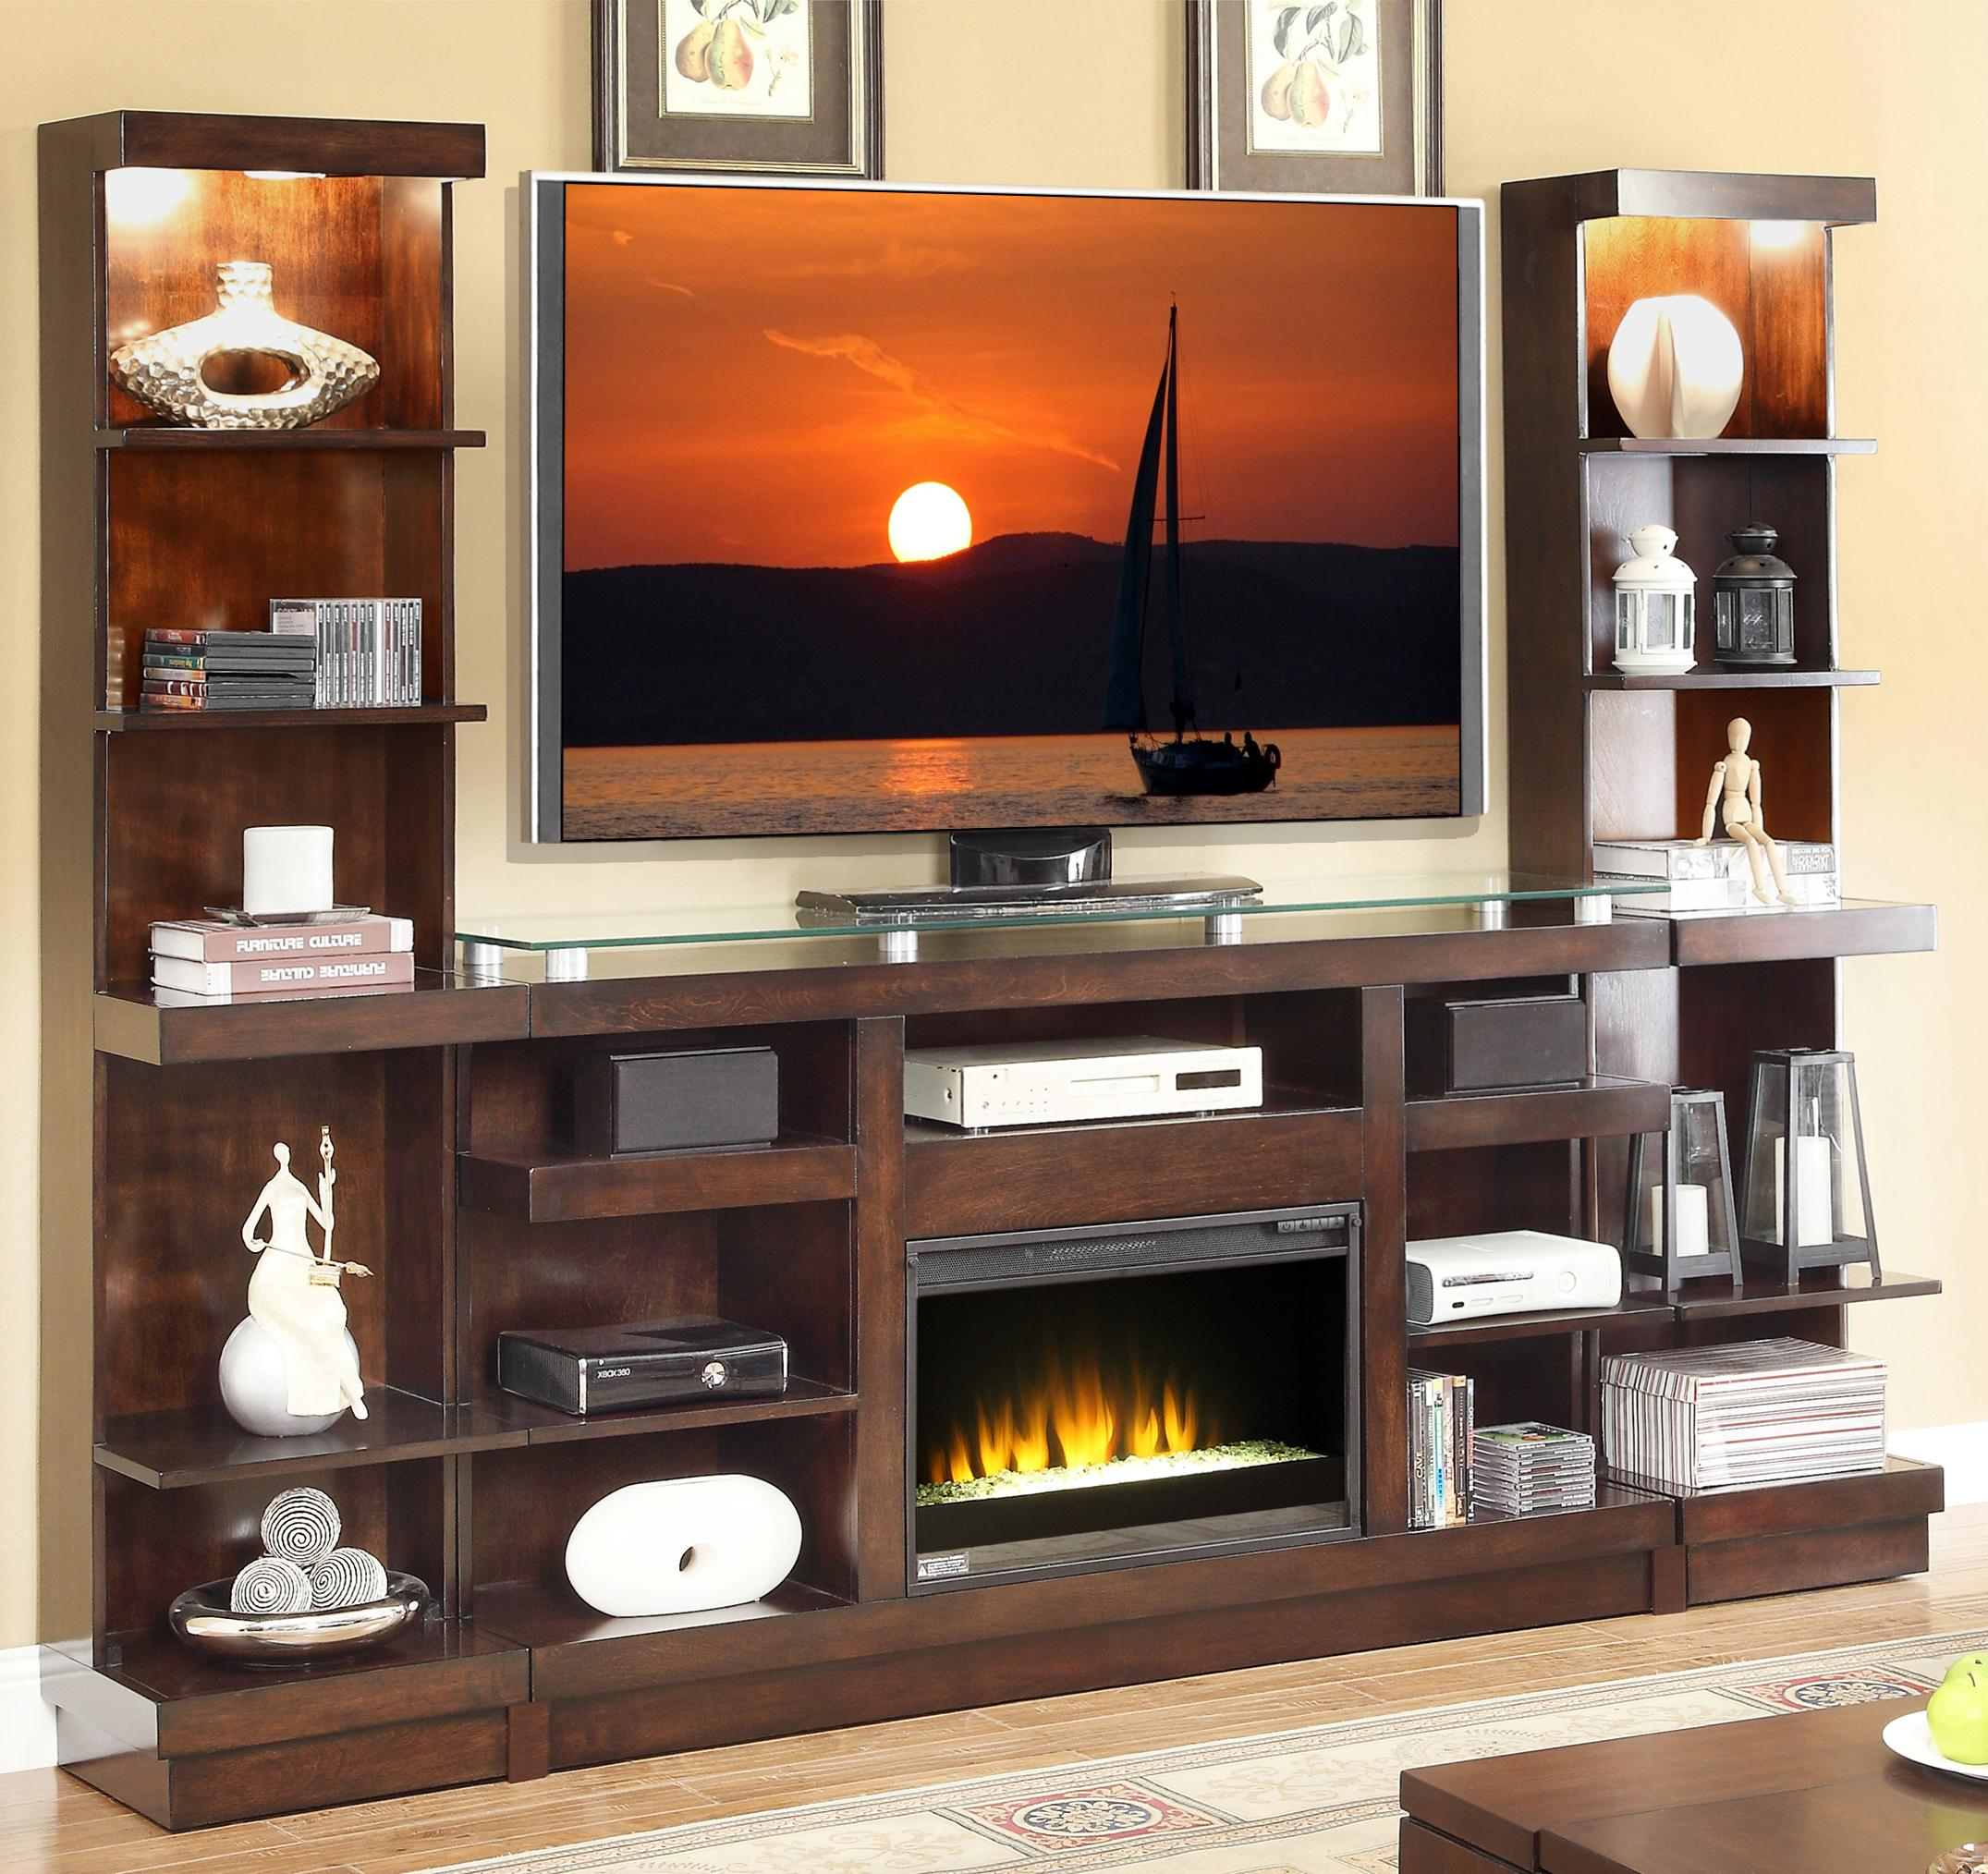 Novella Entertainment Center With Fireplace And Bookcase Piers By Vendor 1356